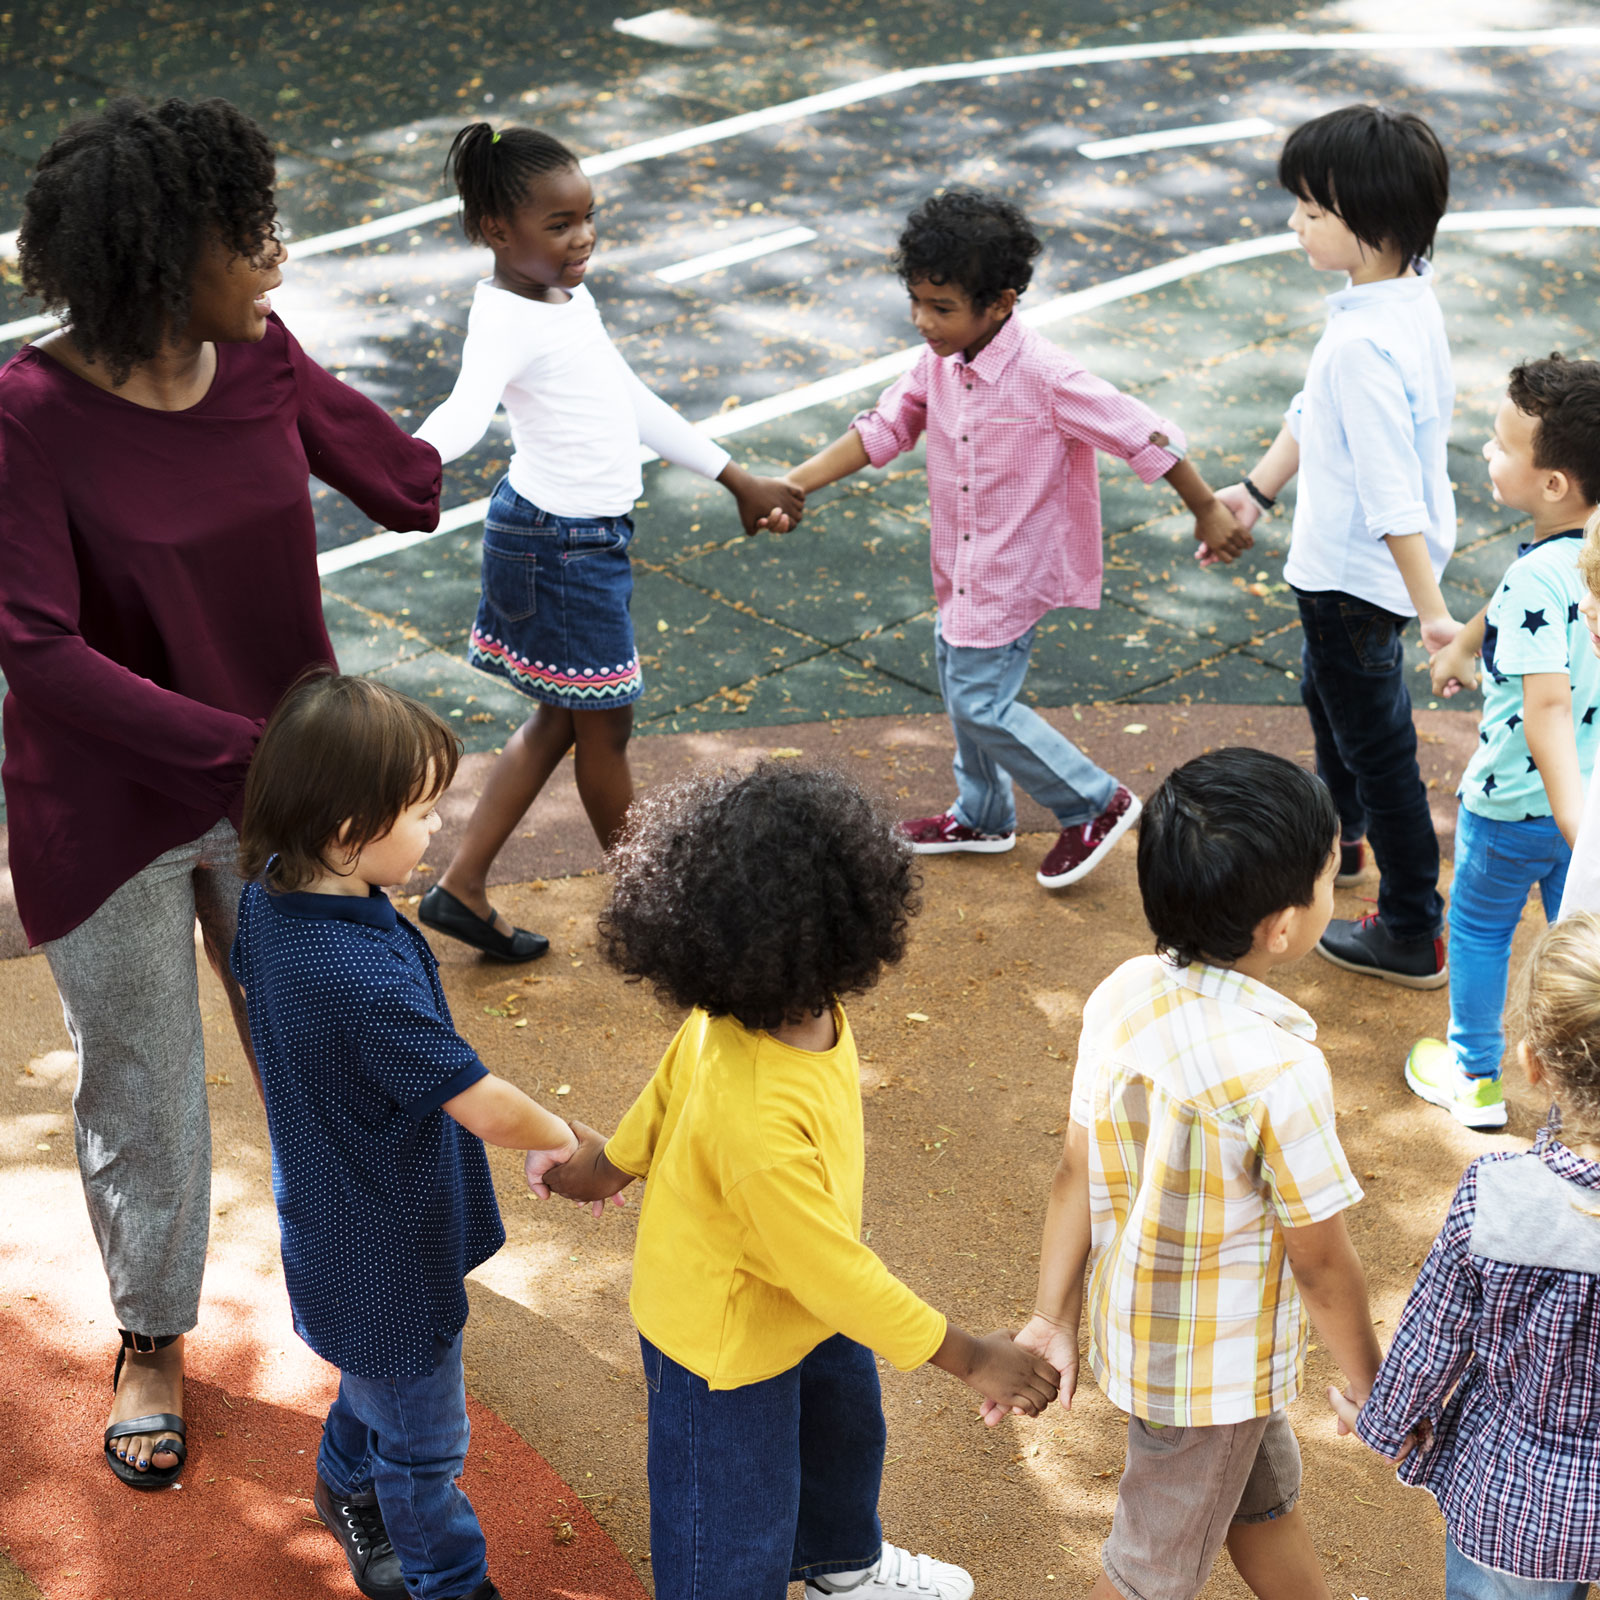 children with their teacher in a circle playing a game on the blacktop at school